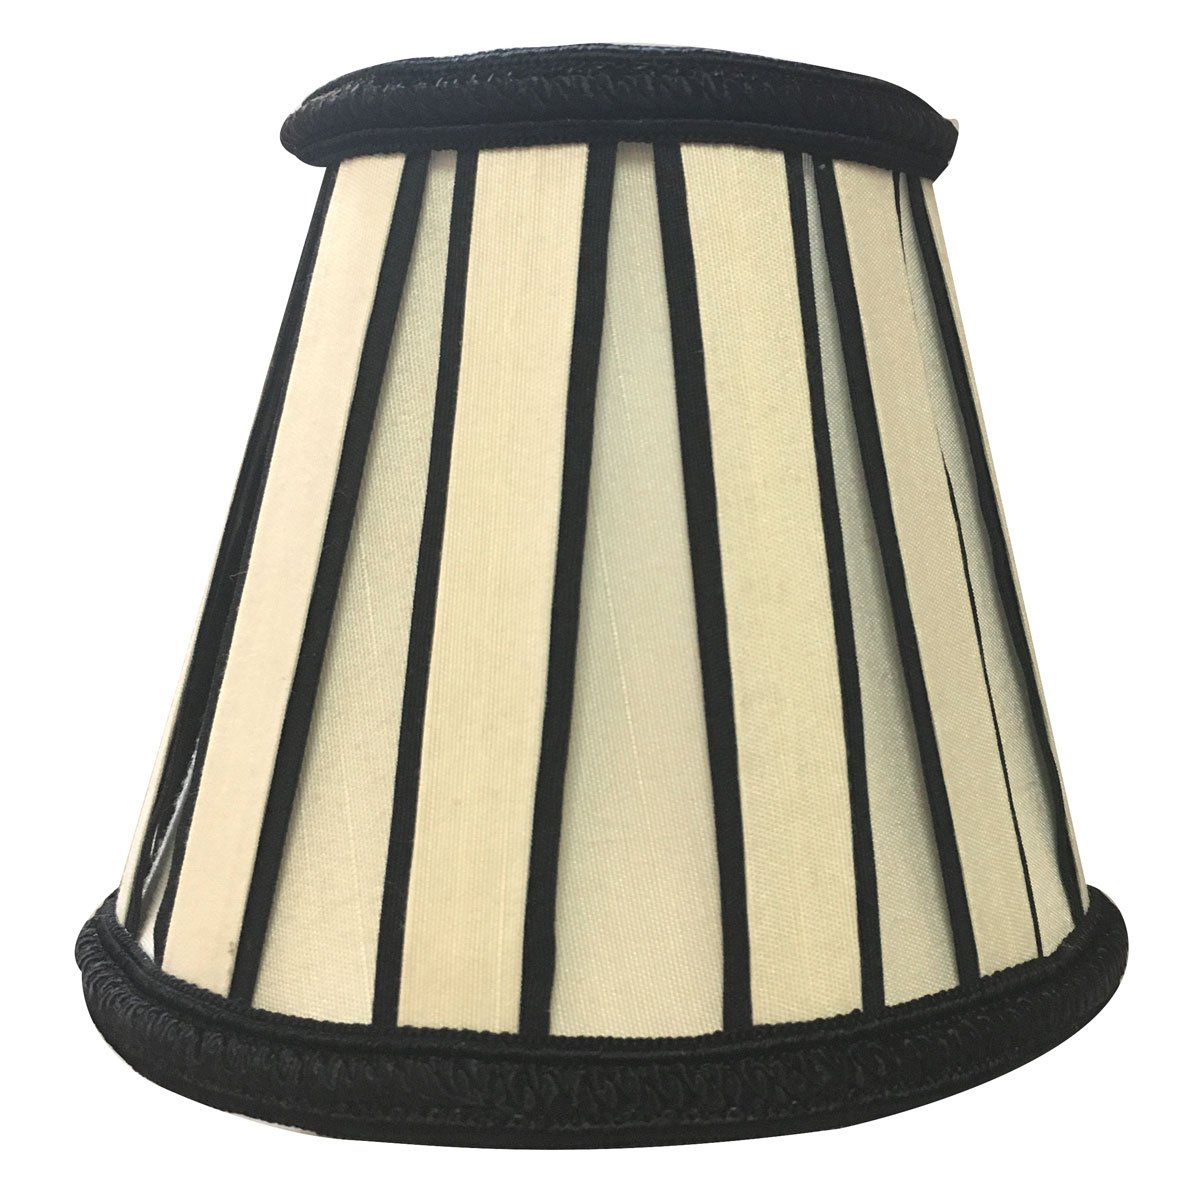 Royal Designs English Pleated Chandelier Lamp Shade - 3 x 5 x 4.5 - Eggshell and Black by Royal Designs, Inc